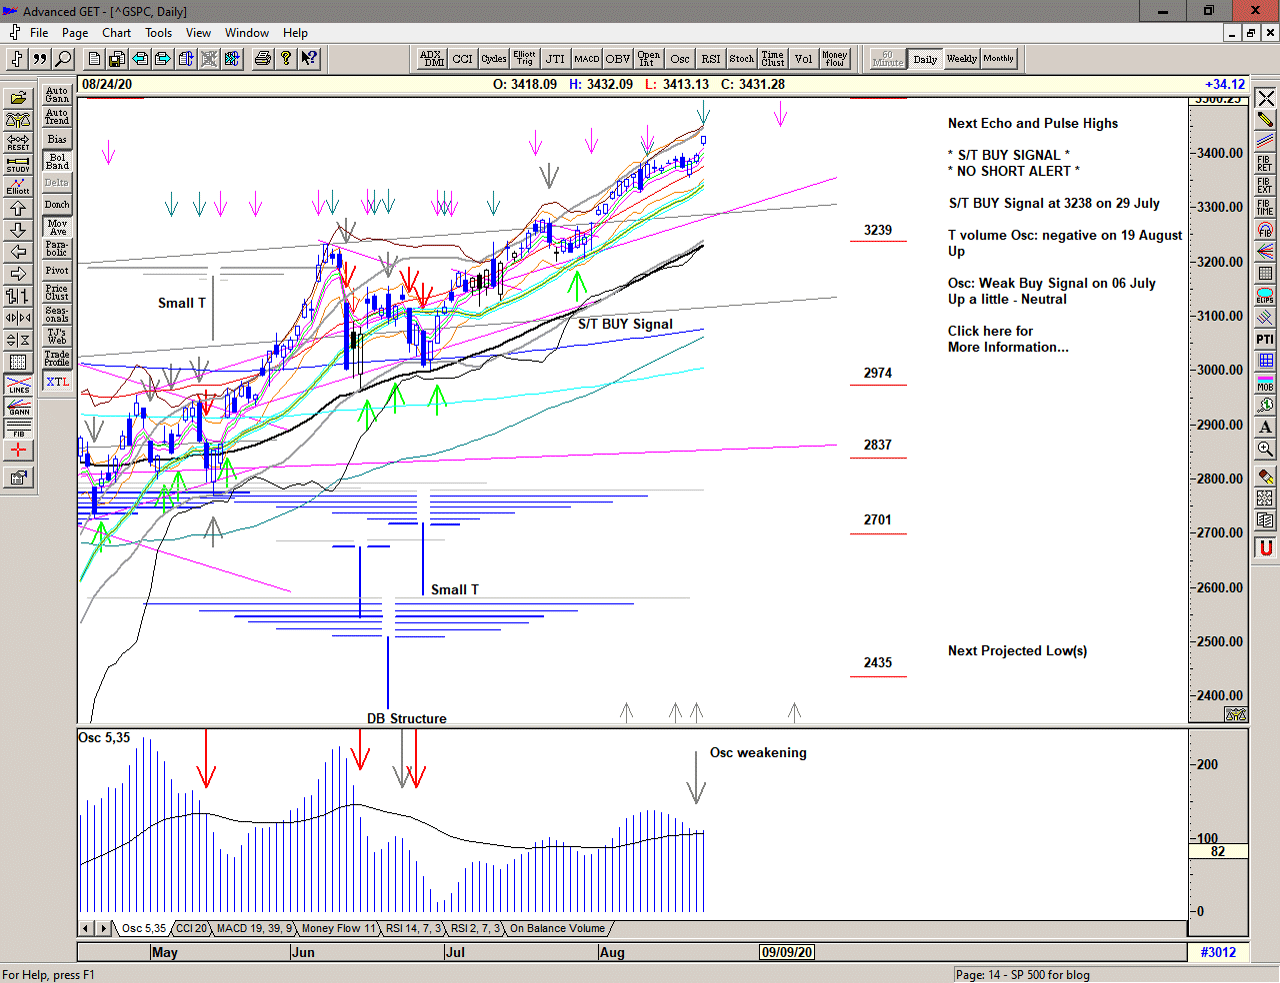 Daily chart of S&P 500 for 25 August 2020